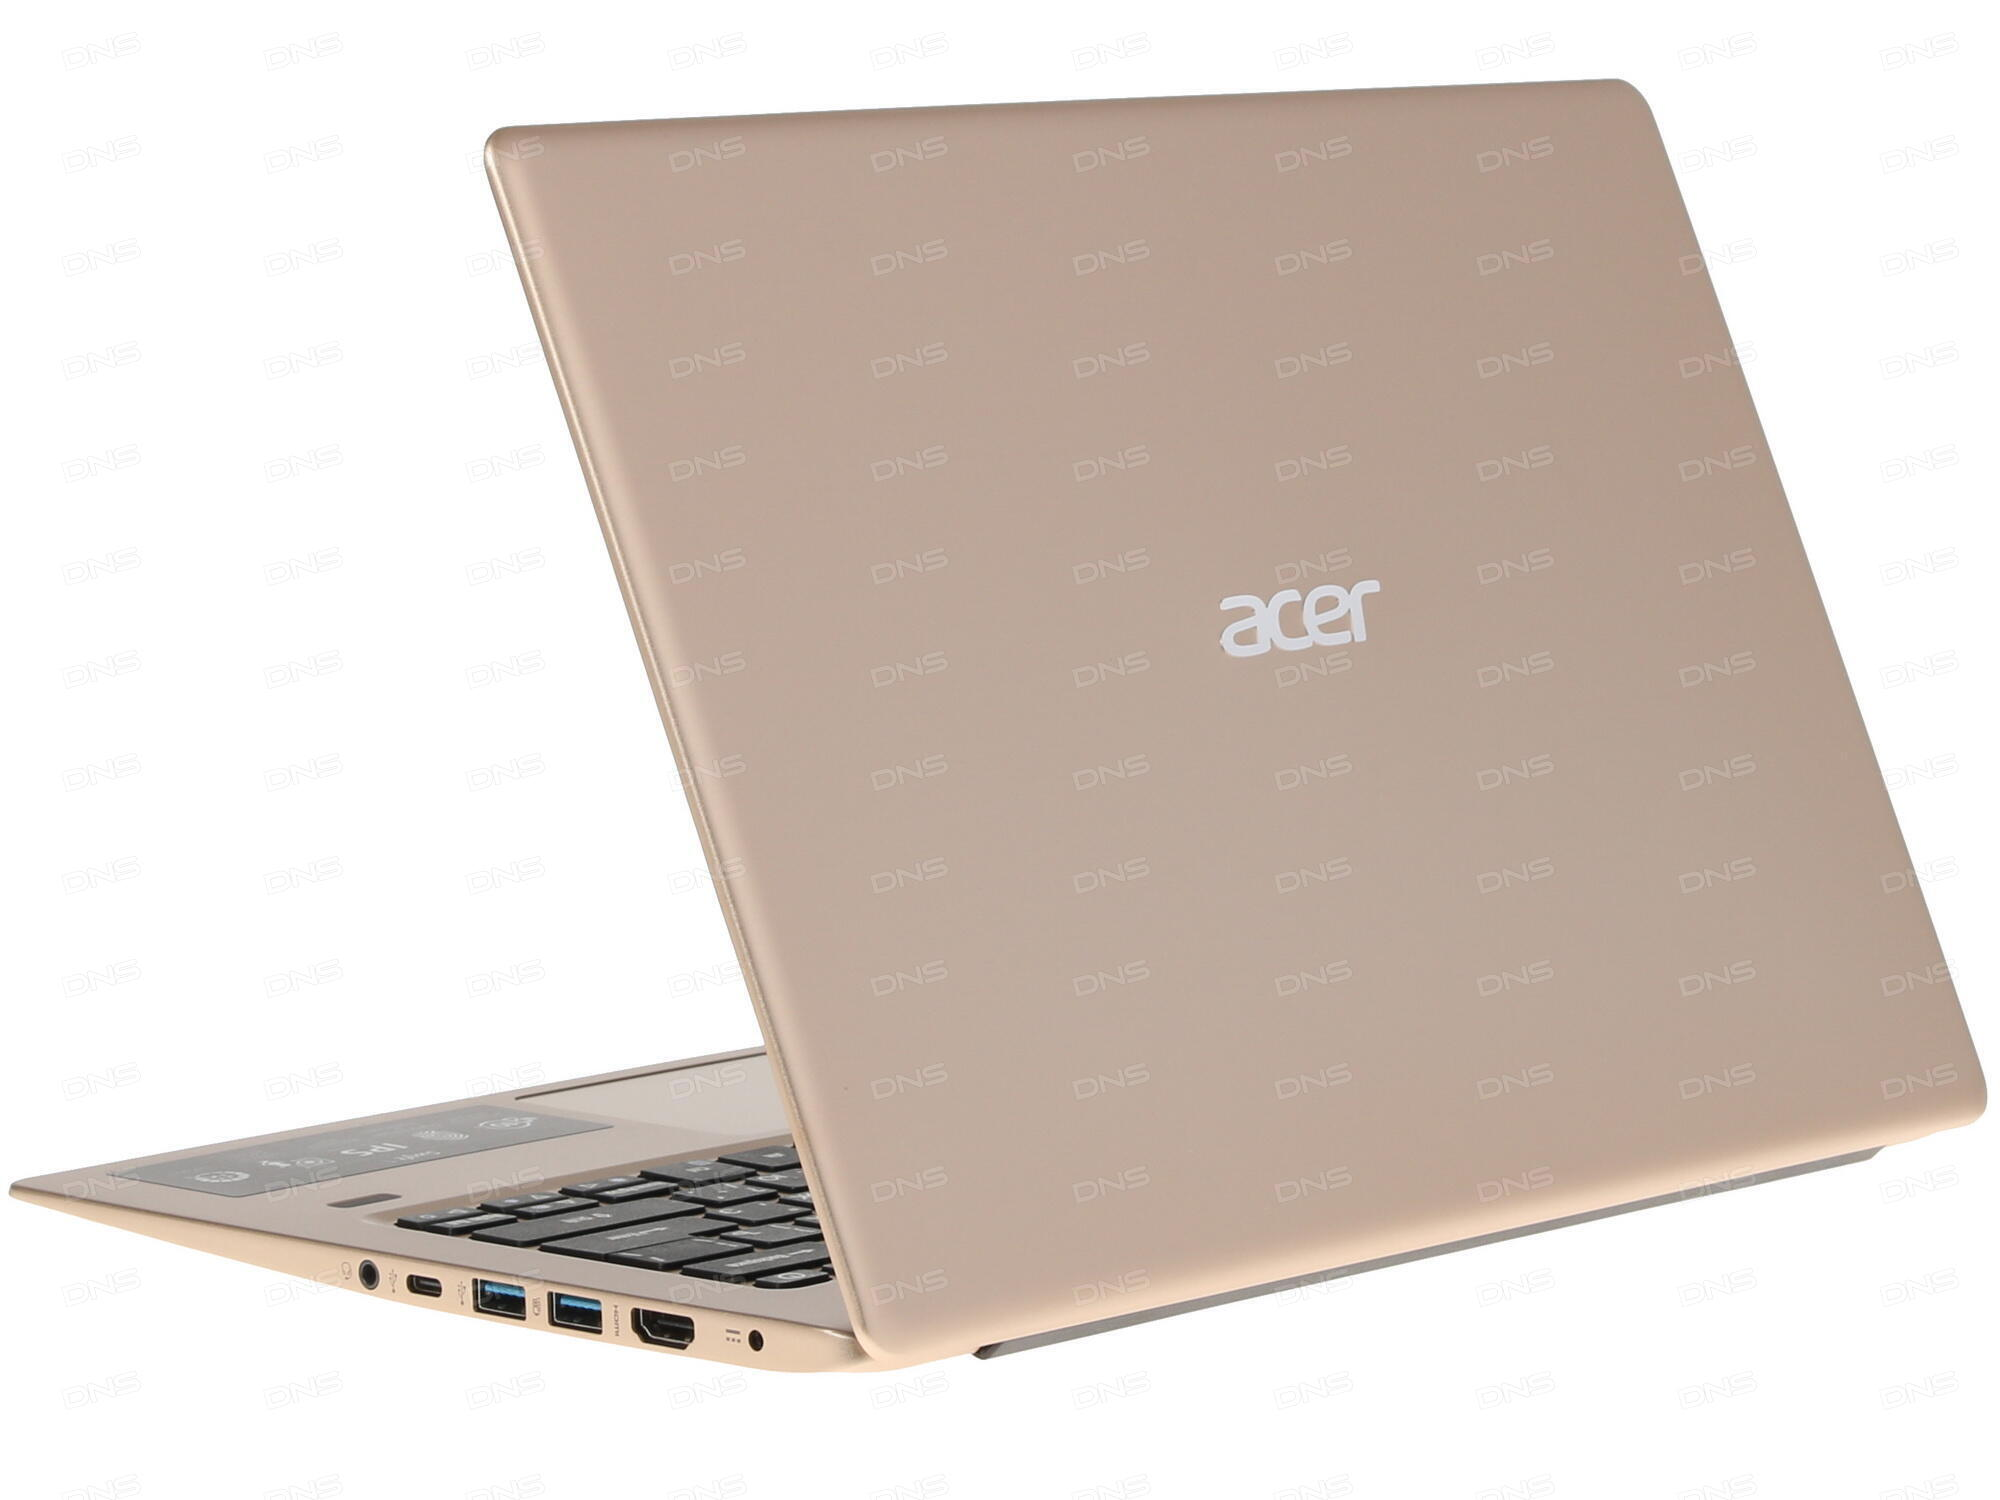 Ноутбук Acer Swift 3 SF314-52-78SA NX.GPLER.005 (Intel Core i7-7500U 2.7 GHz/8192Mb/256Gb SSD/No ODD/Intel HD Graphics/Wi-Fi/Bluetooth/Cam/14.0/1920x1080/Windows 10 64-bit)